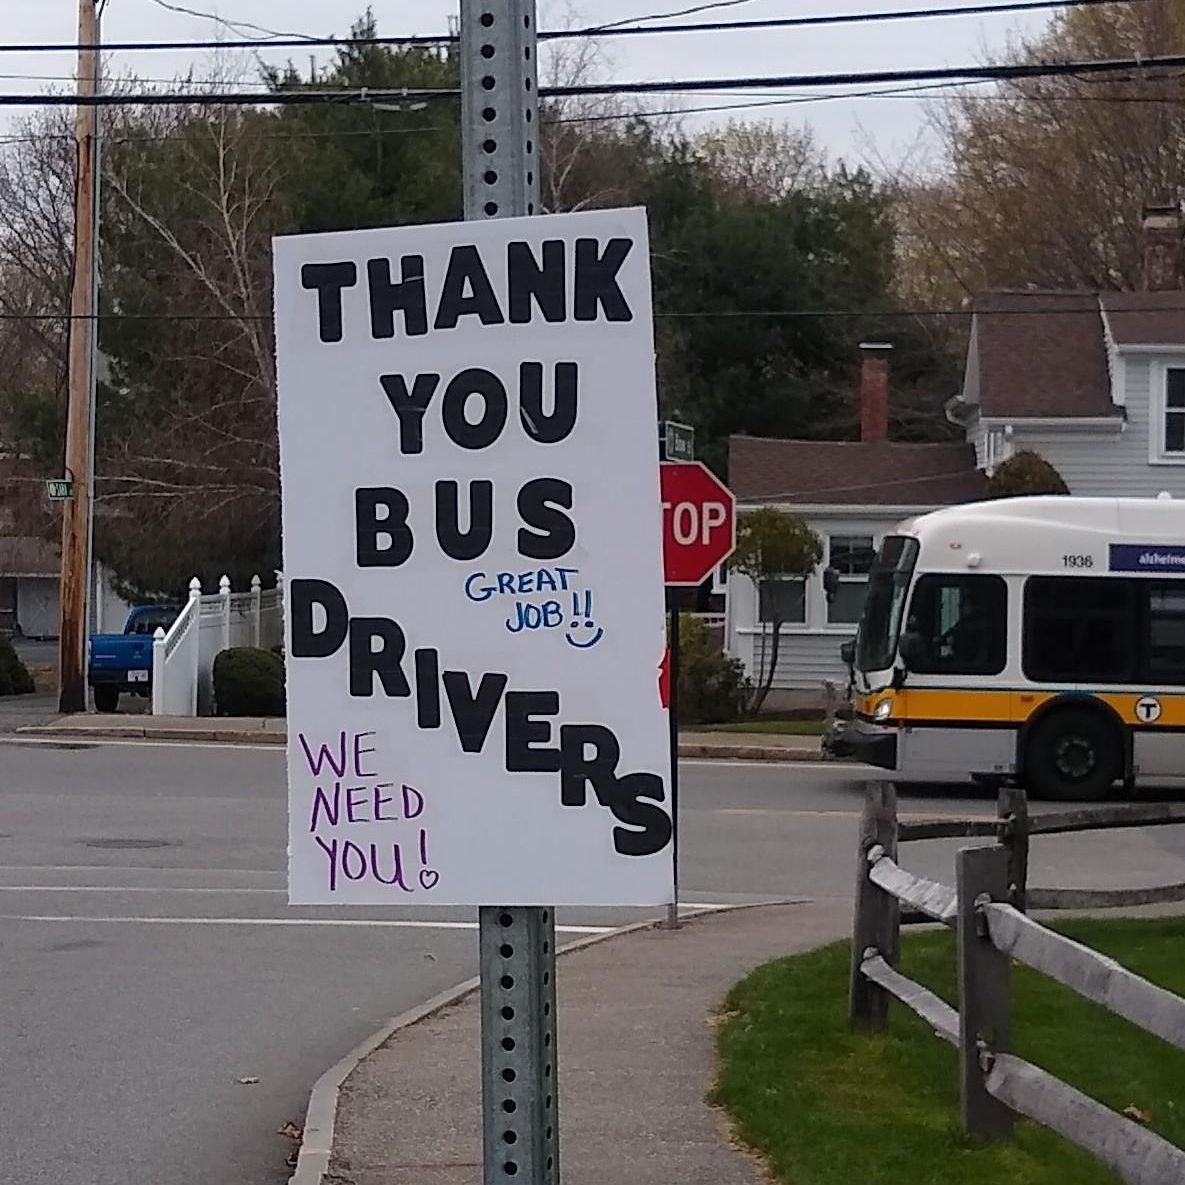 A sign outside saying Thank You Bus Drivers.